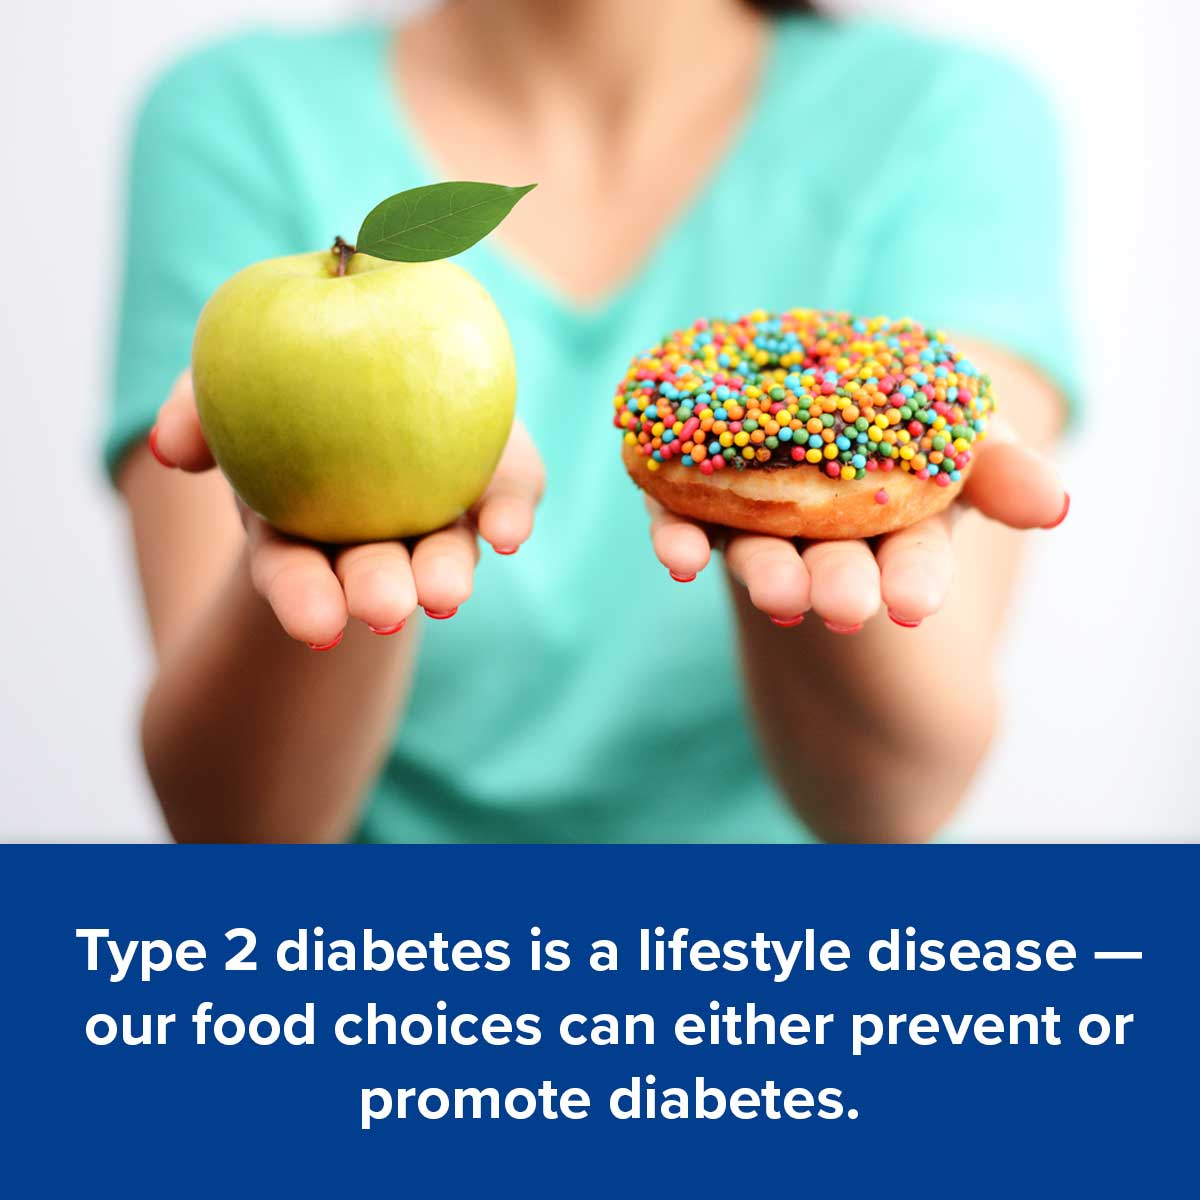 Type 2 diabetes is a lifestyle disease — our food choices can either prevent or promote diabetes.